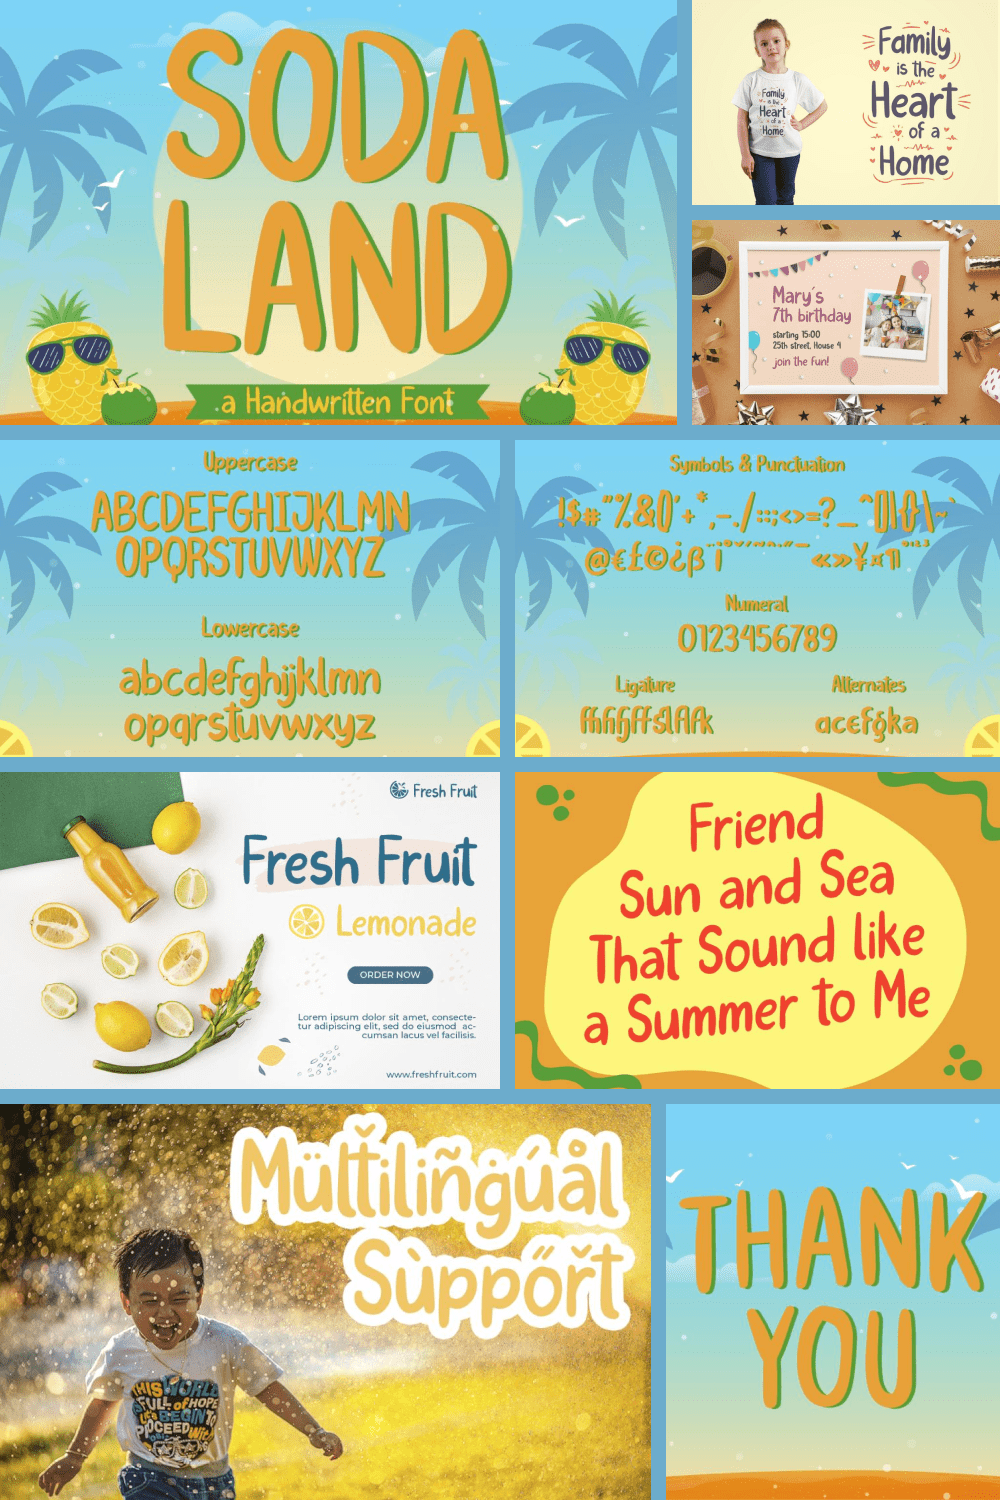 Soda Land is a fancy font that will bring playful feel to your designs.